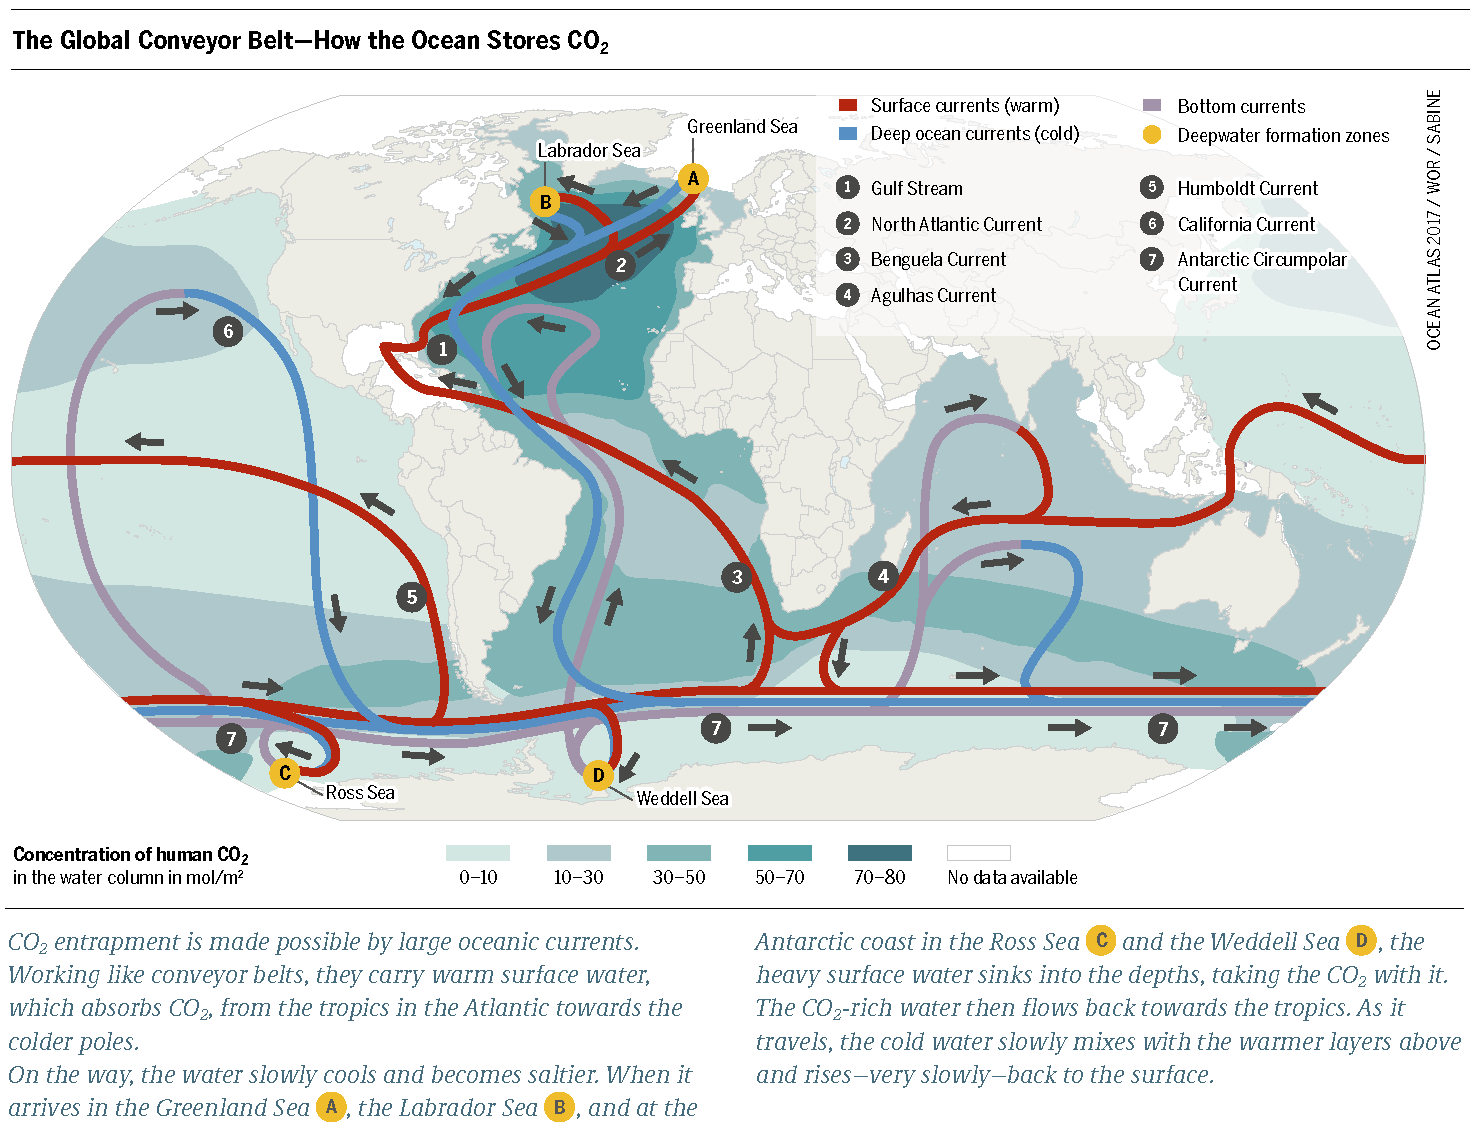 How the ocean slows climate change meeresatlas download graphic pdf gumiabroncs Image collections